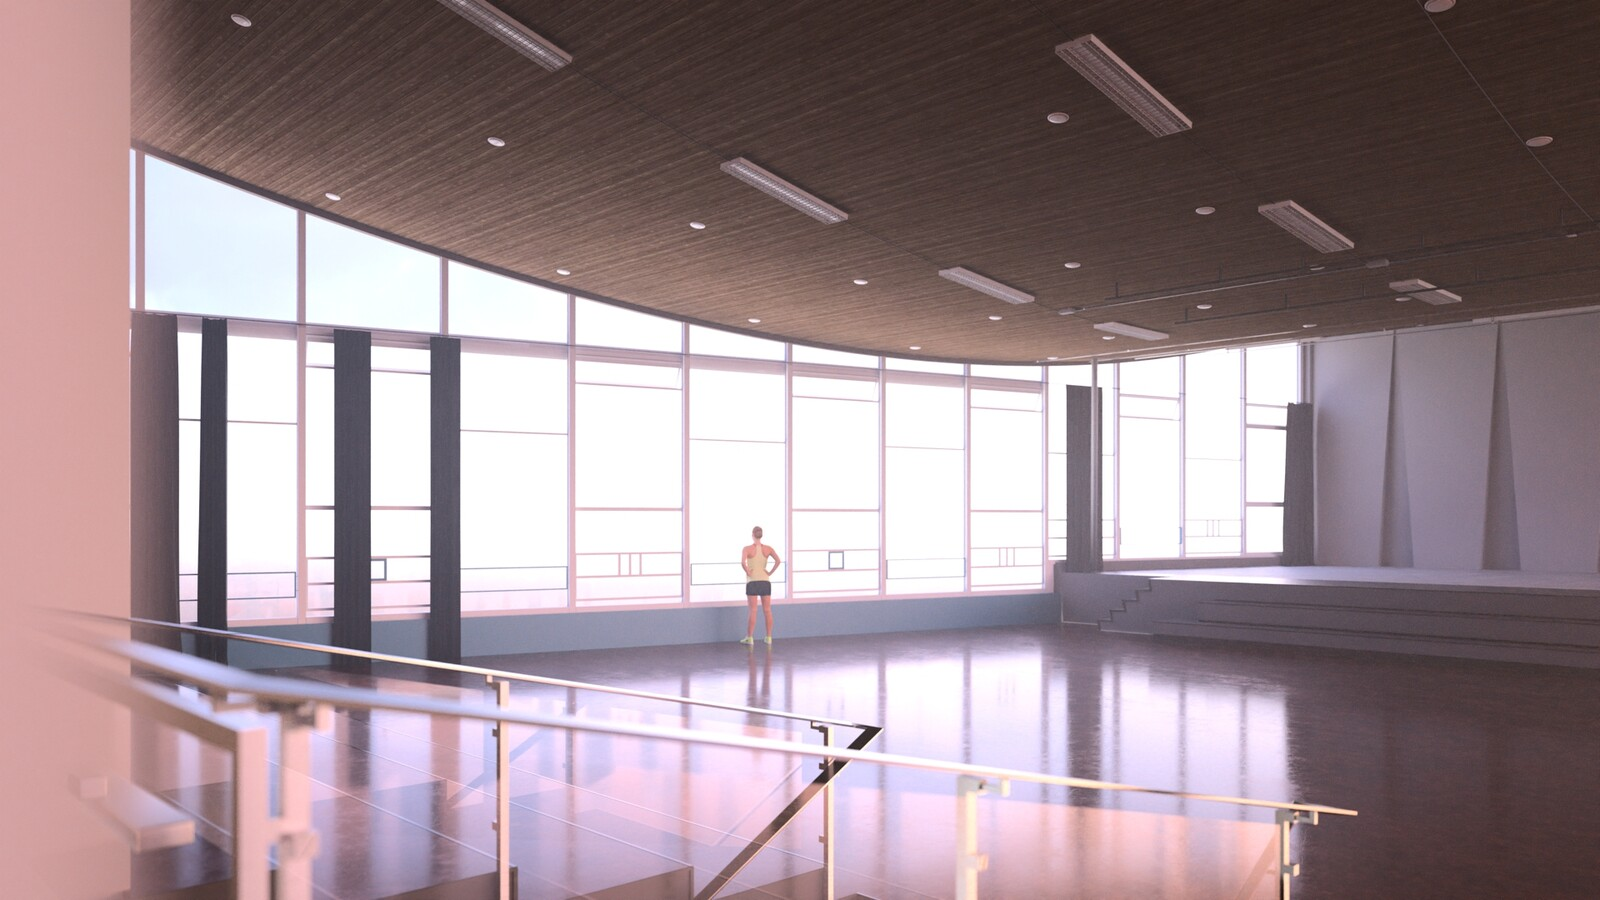 SketchUp 2021 + Thea Render V3 Broedplaats LELY (The Lely Incubator) Auditorium Amsterdam Showroom Final-Scene 5 17m32s HD1080 1536sp